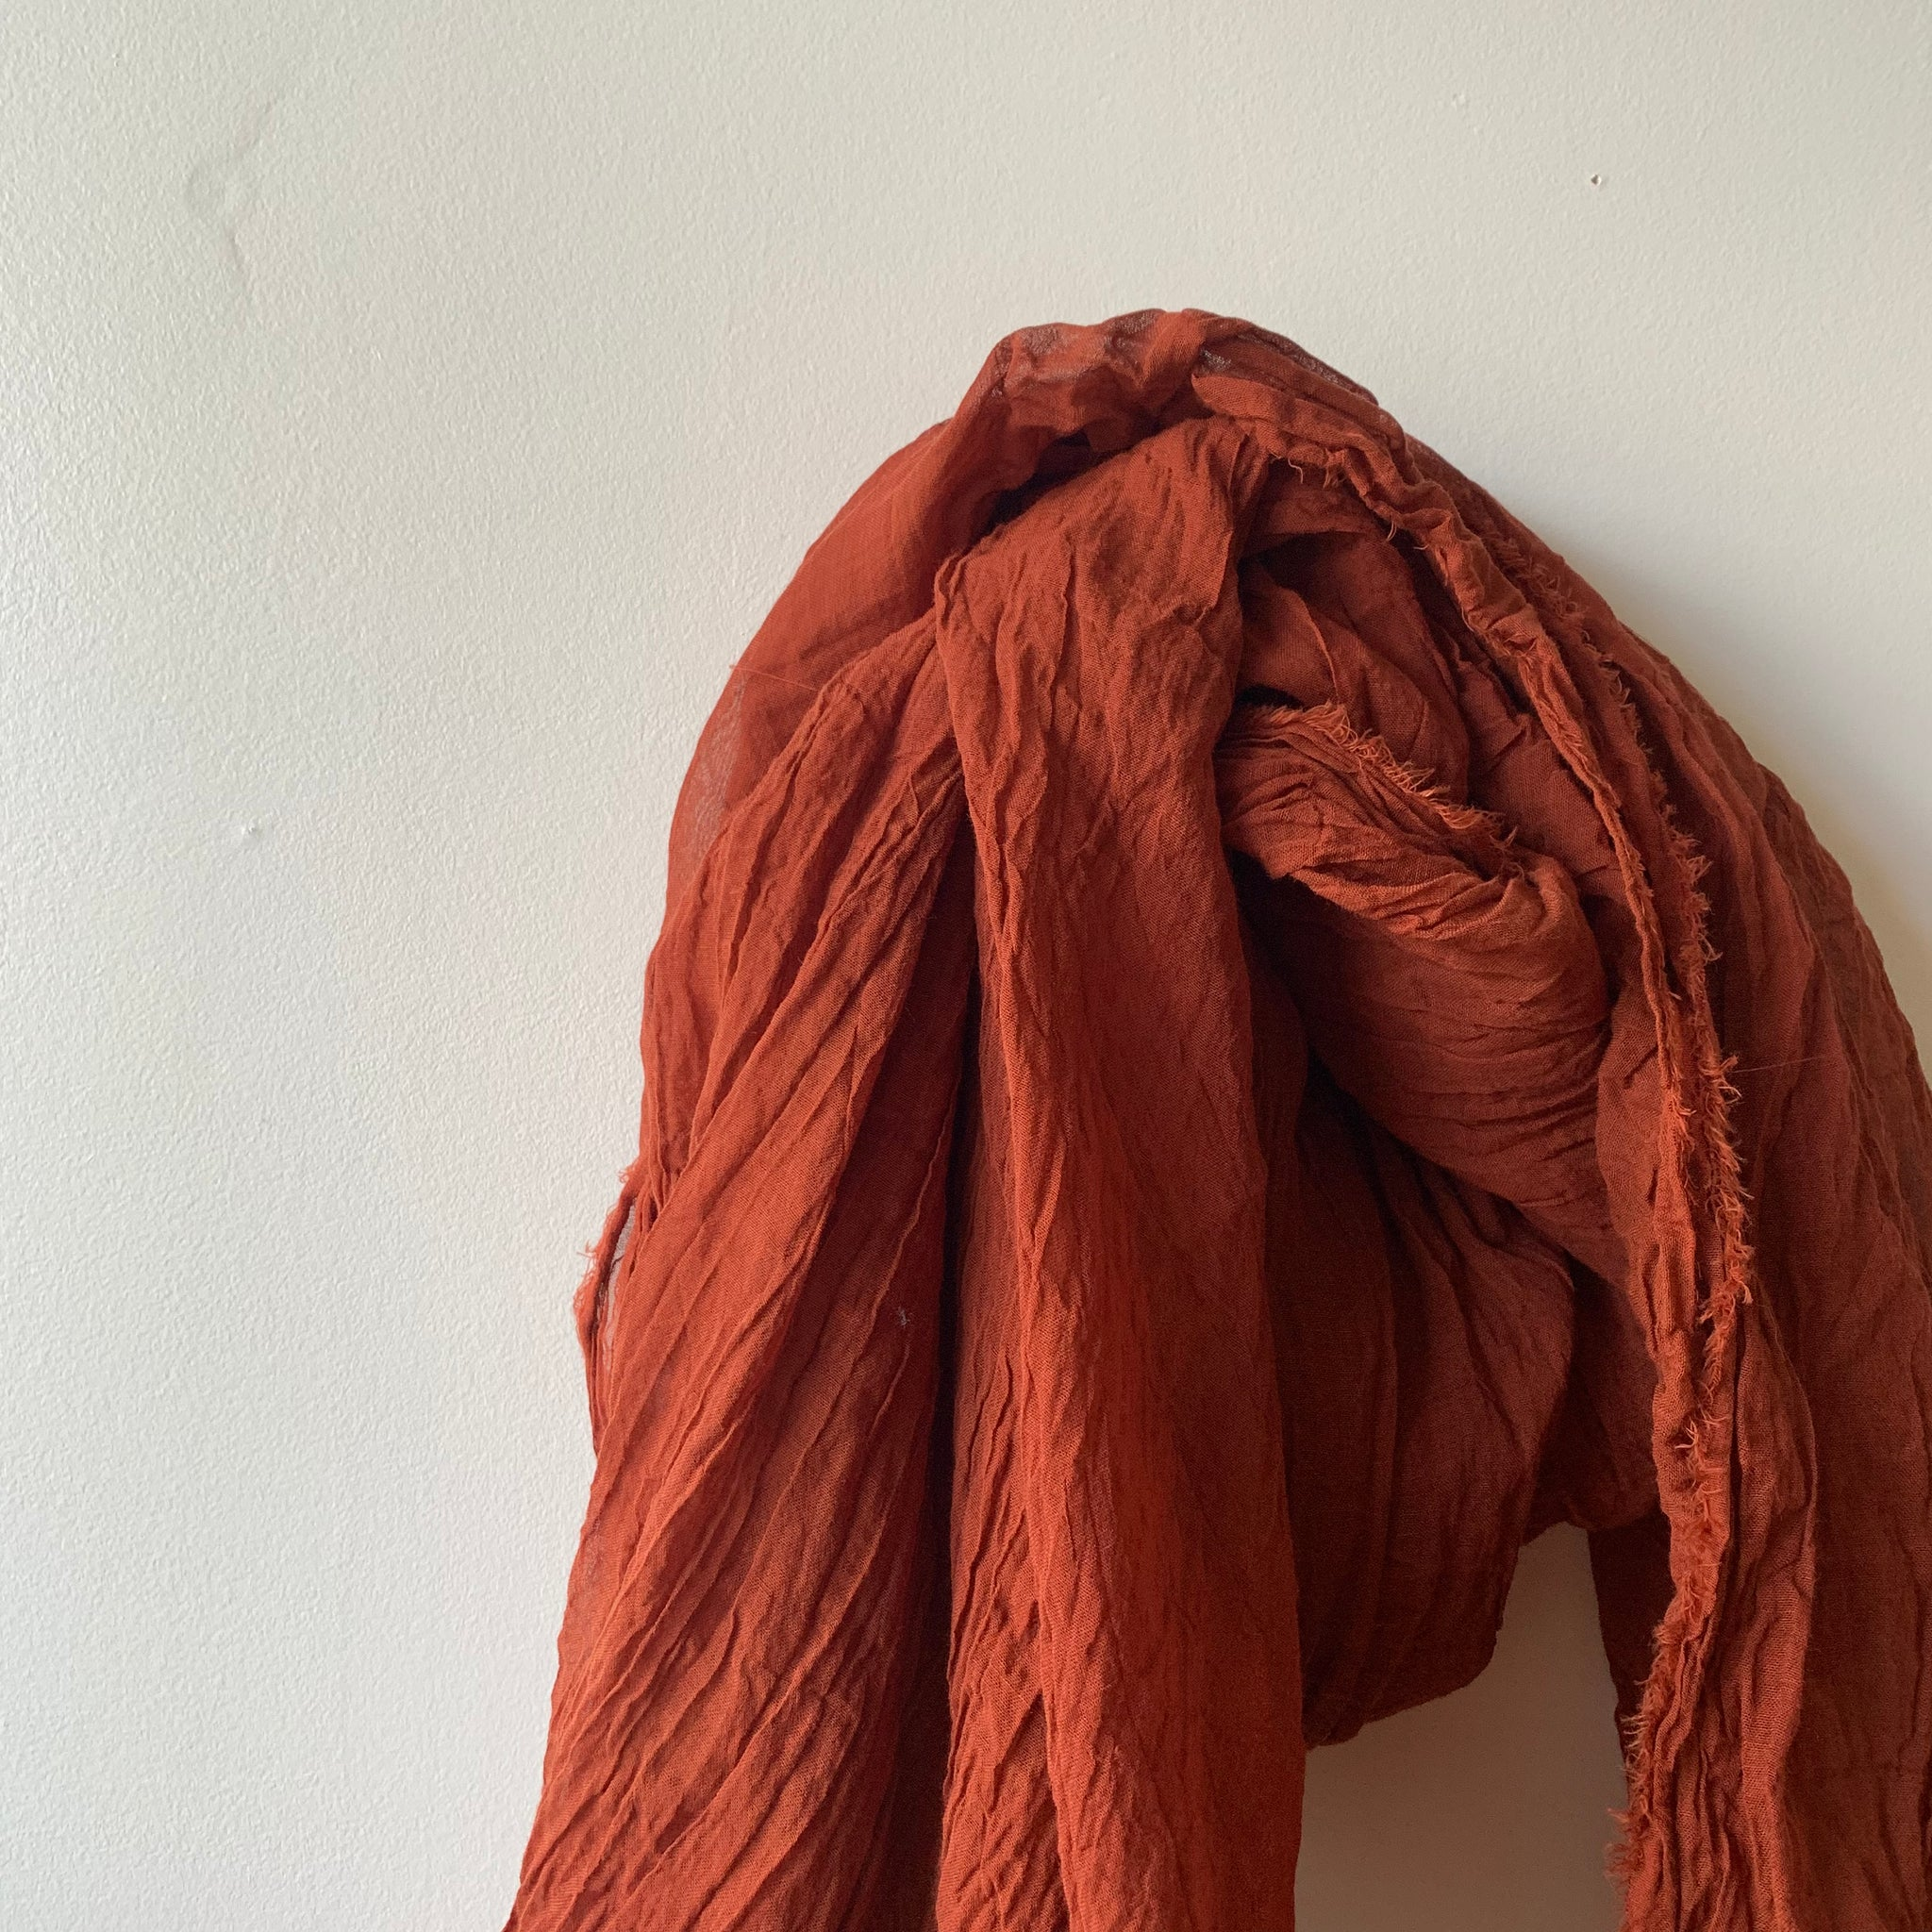 Organic Cotton Scarf in Rust by Scarfshop - Upstate MN